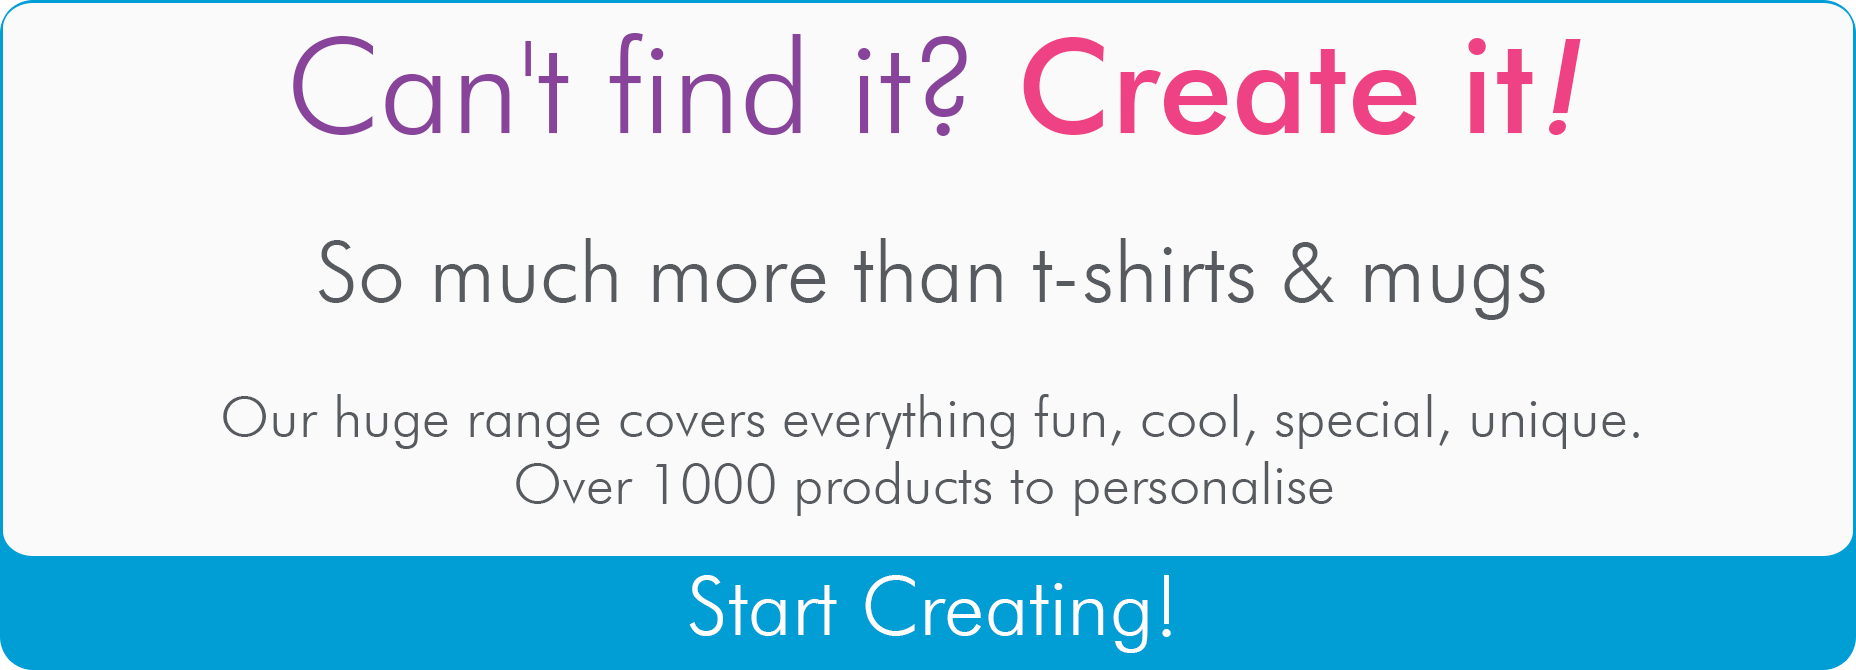 Can't find it? Create it! Forget t-shirts and mugs, our huge range or trendy products is as unique as you are! Over 1000 products to customise